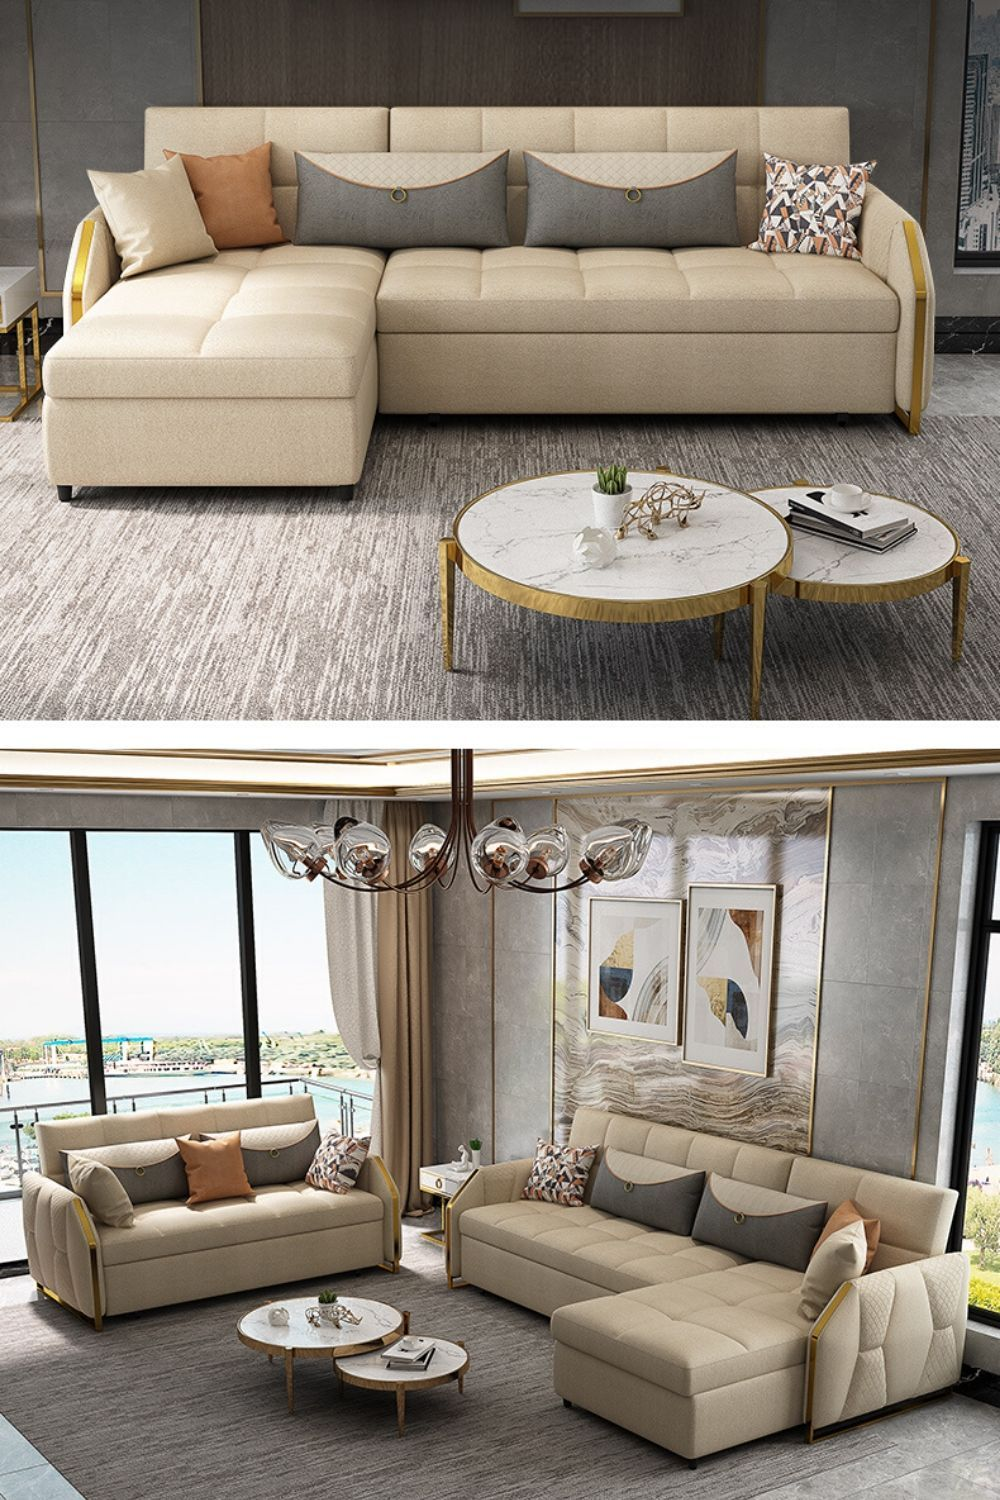 Pin by Home Decor ~ Home Furniture ~ on Loveseats in 2020 ...